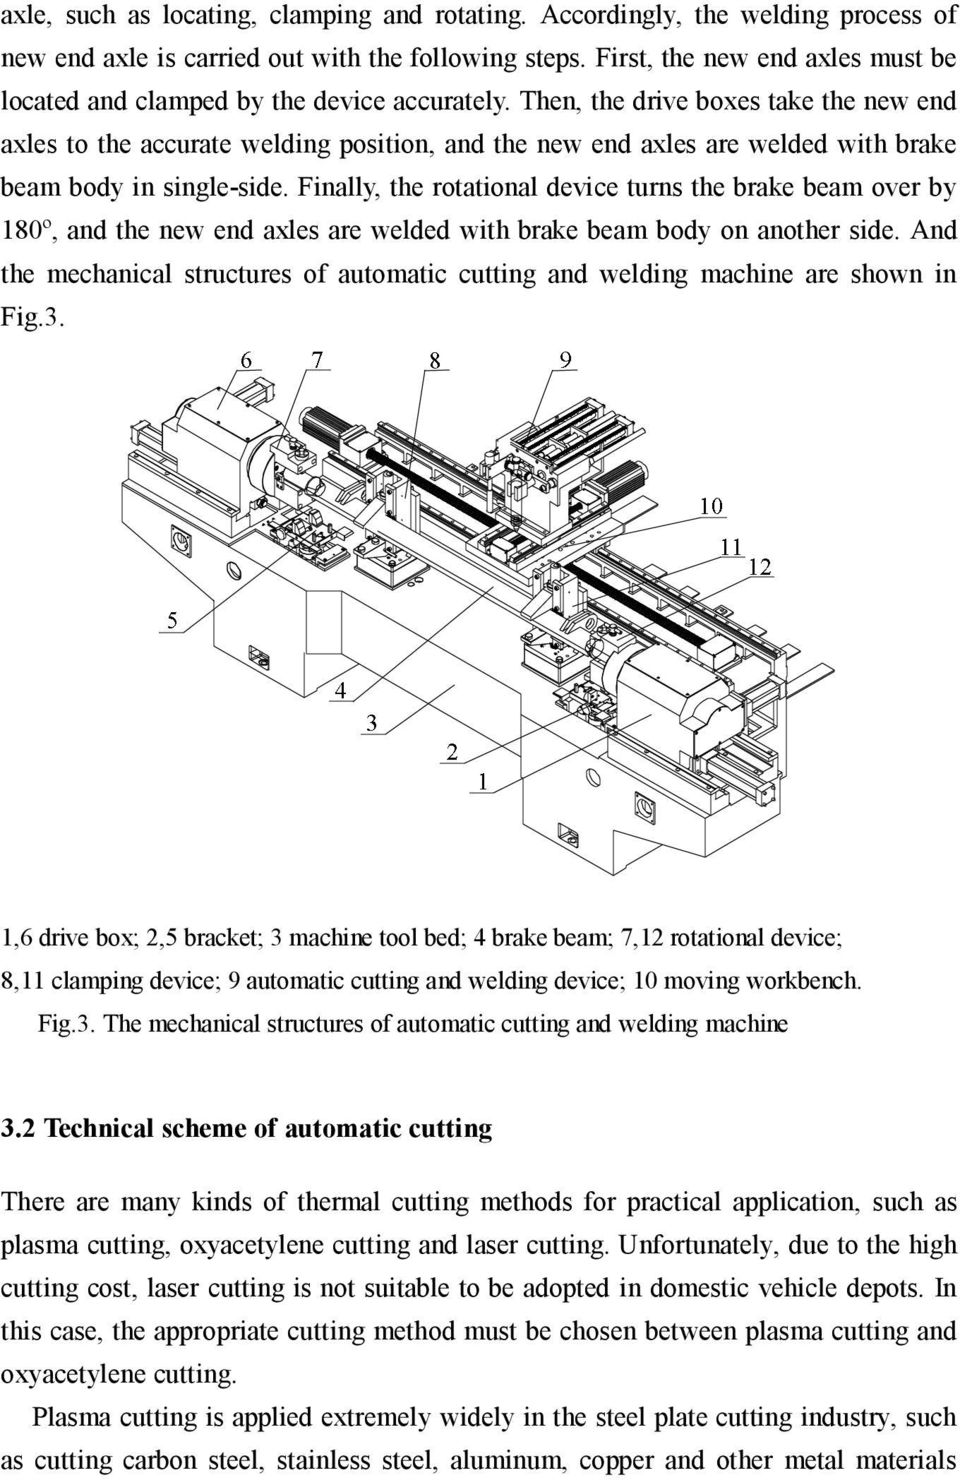 hight resolution of then the drive boxes take the new end axles to the accurate welding position